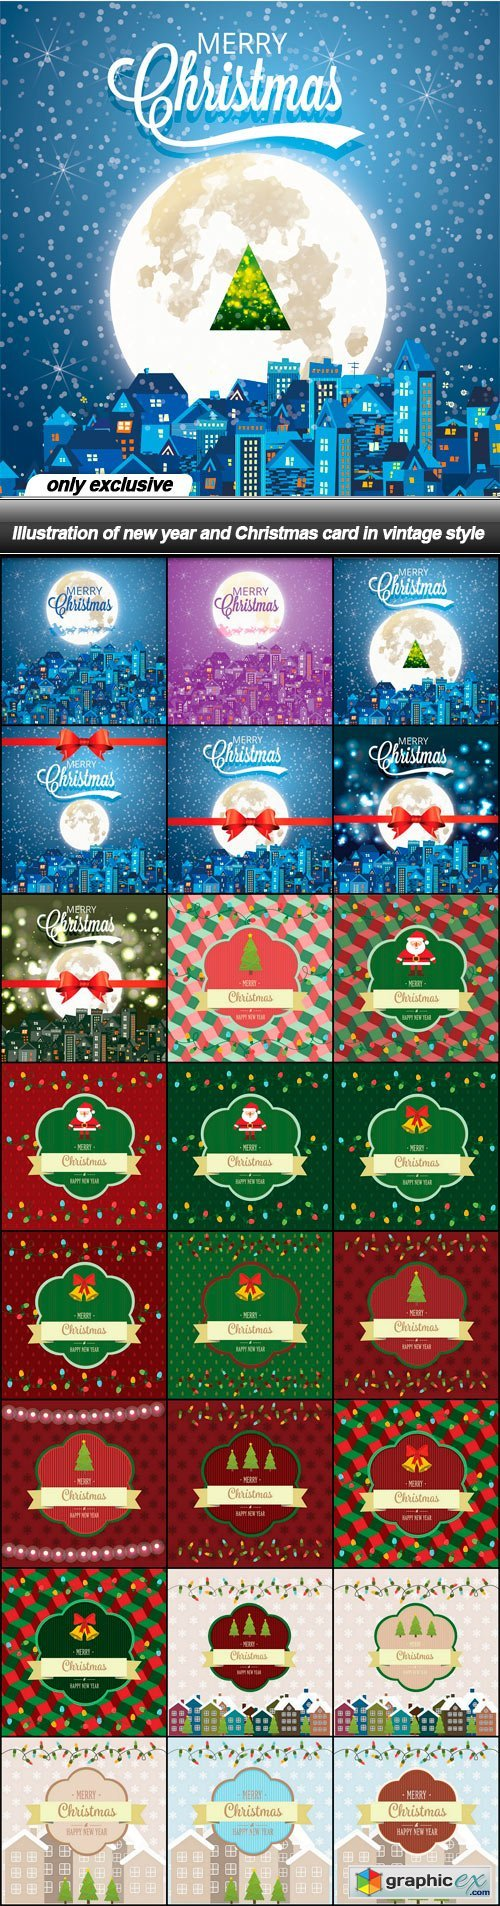 Illustration of new year and Christmas card in vintage style - 24 EPS